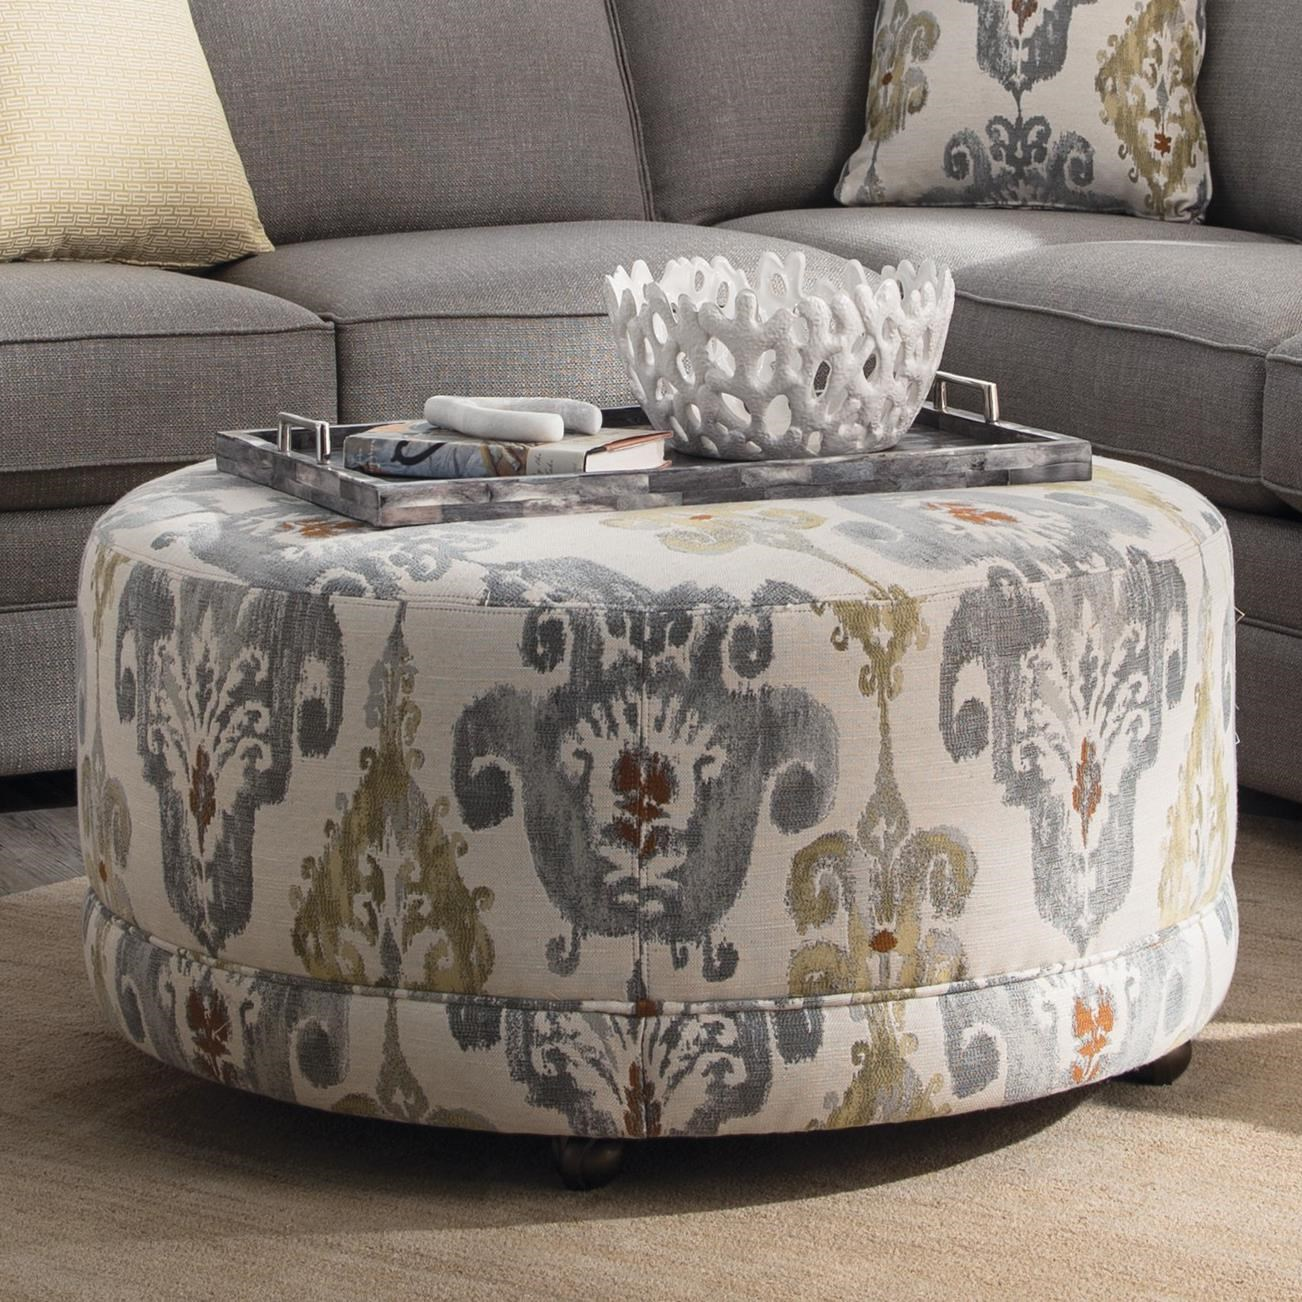 Hickorycraft Accent Ottomans Round Contemporary Ottoman With Casters